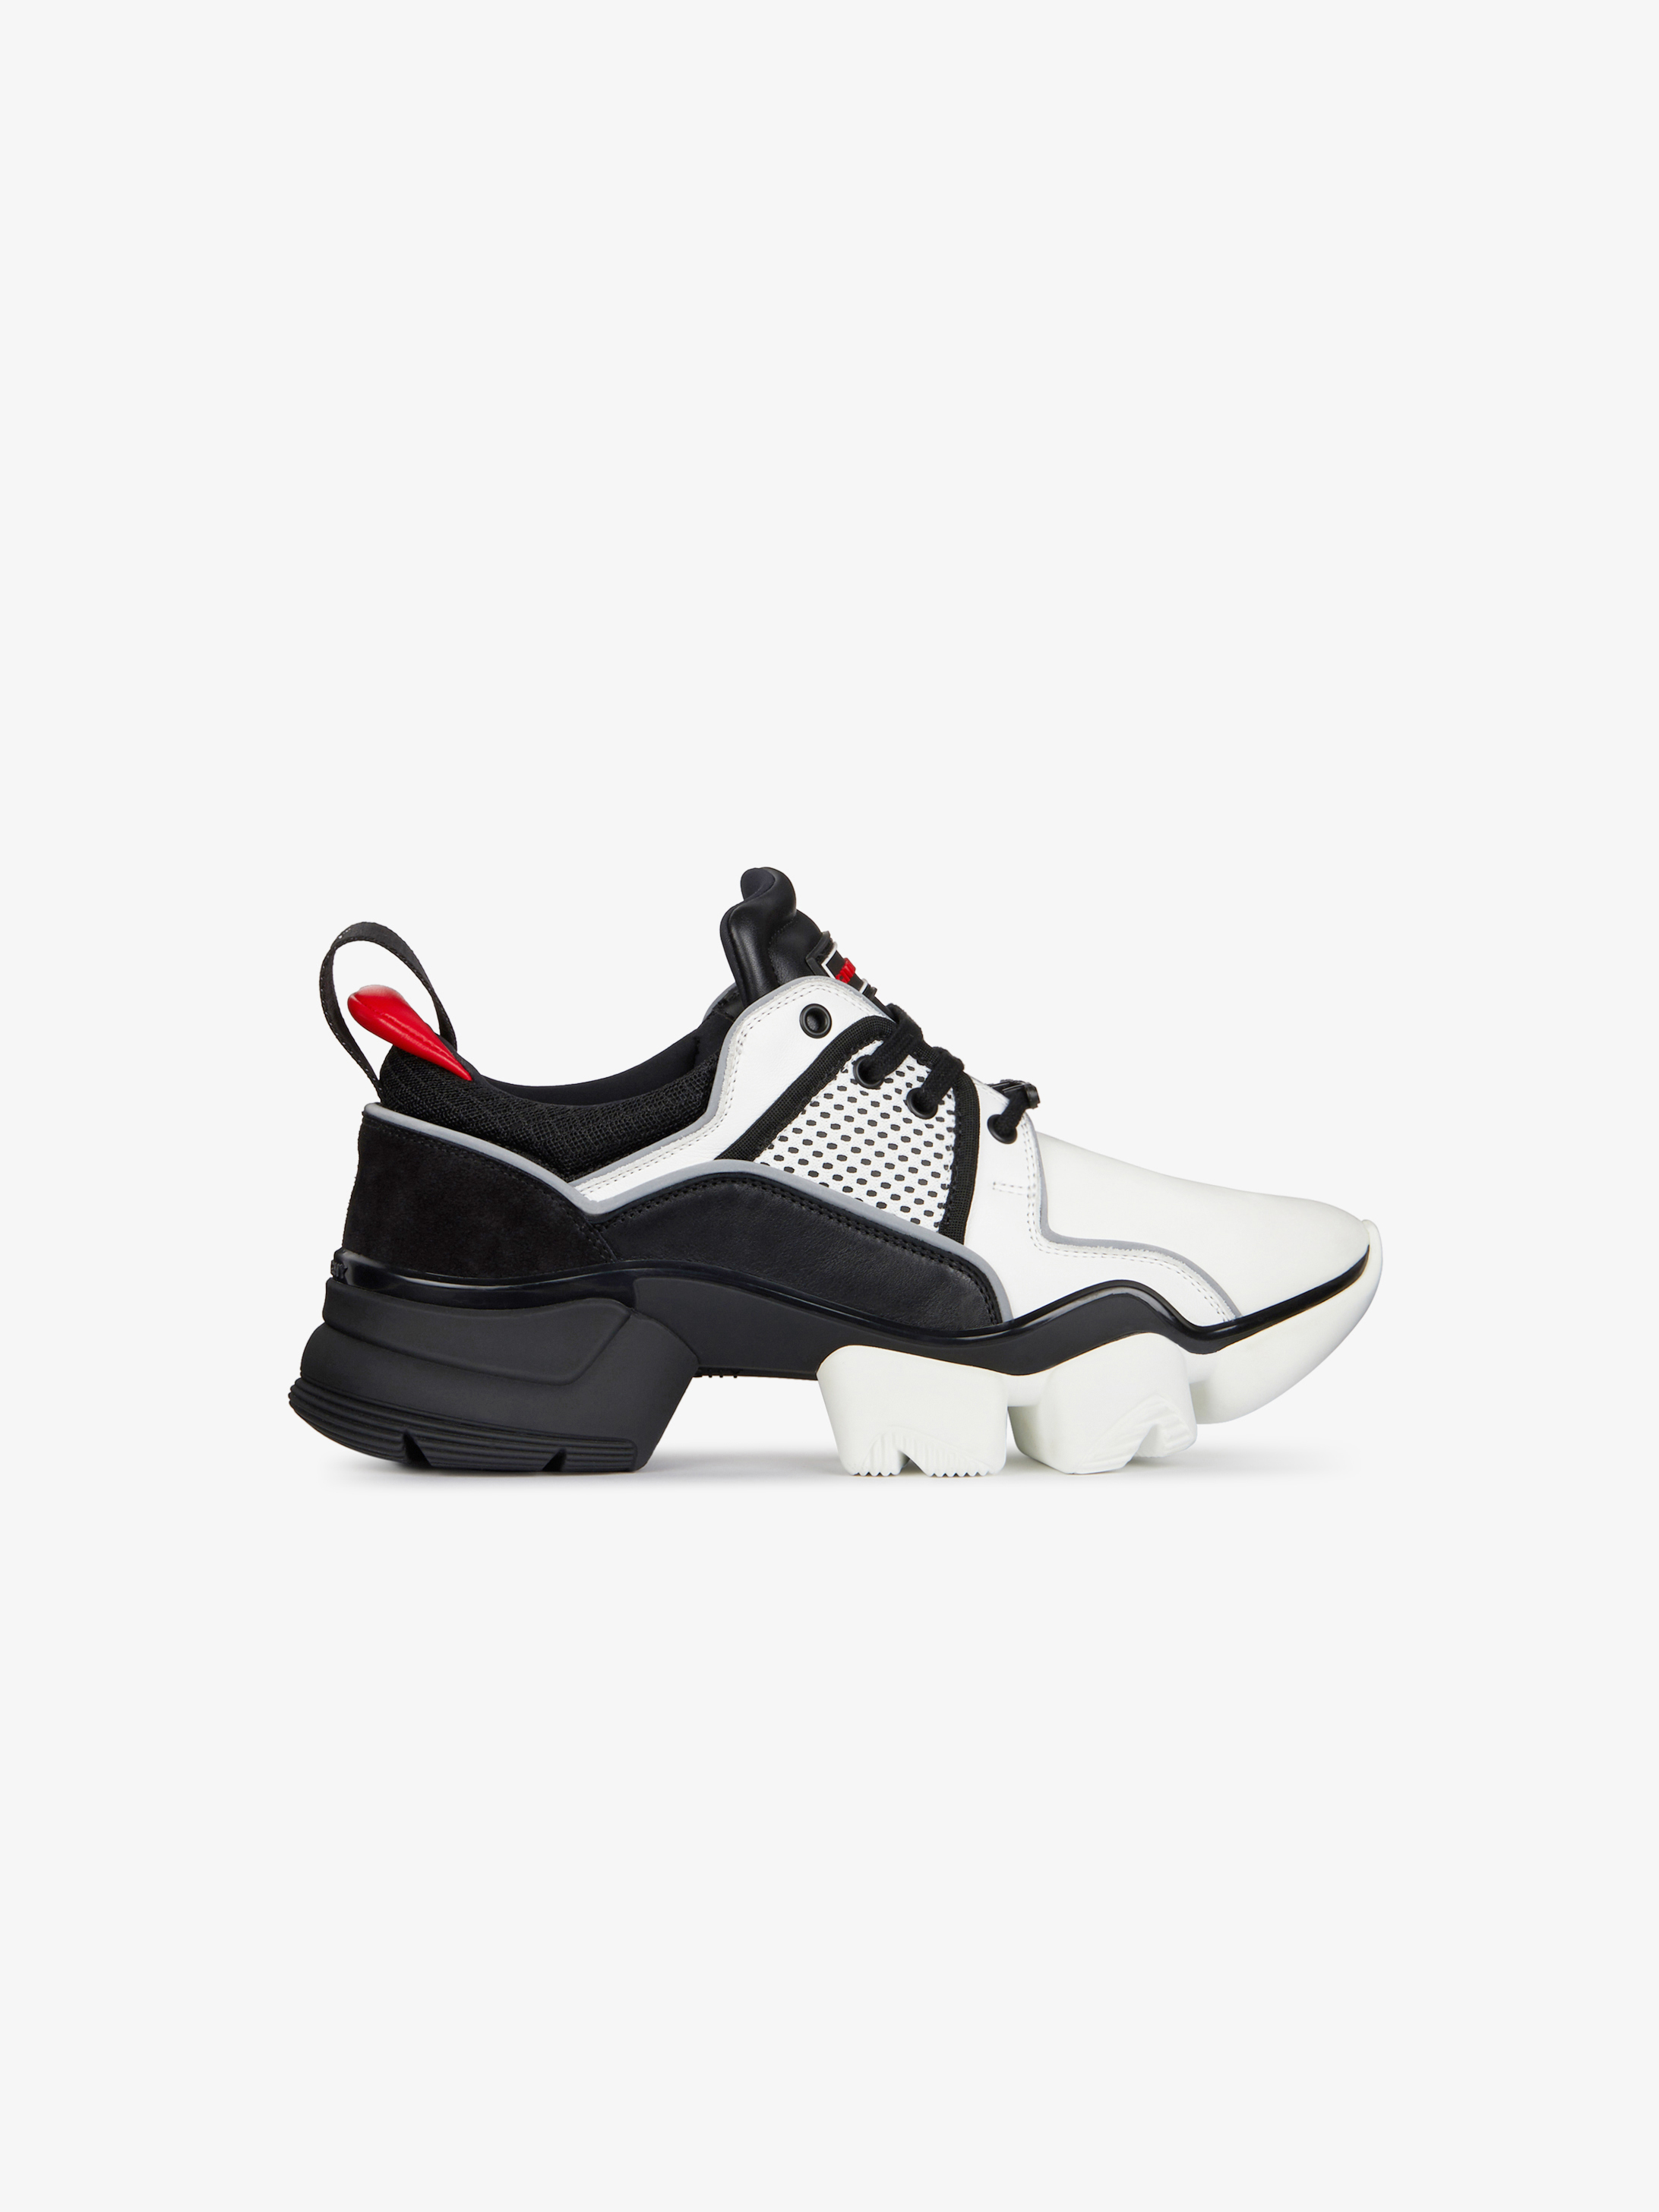 Two-toned Jaw low sneakers in neoprene and leather